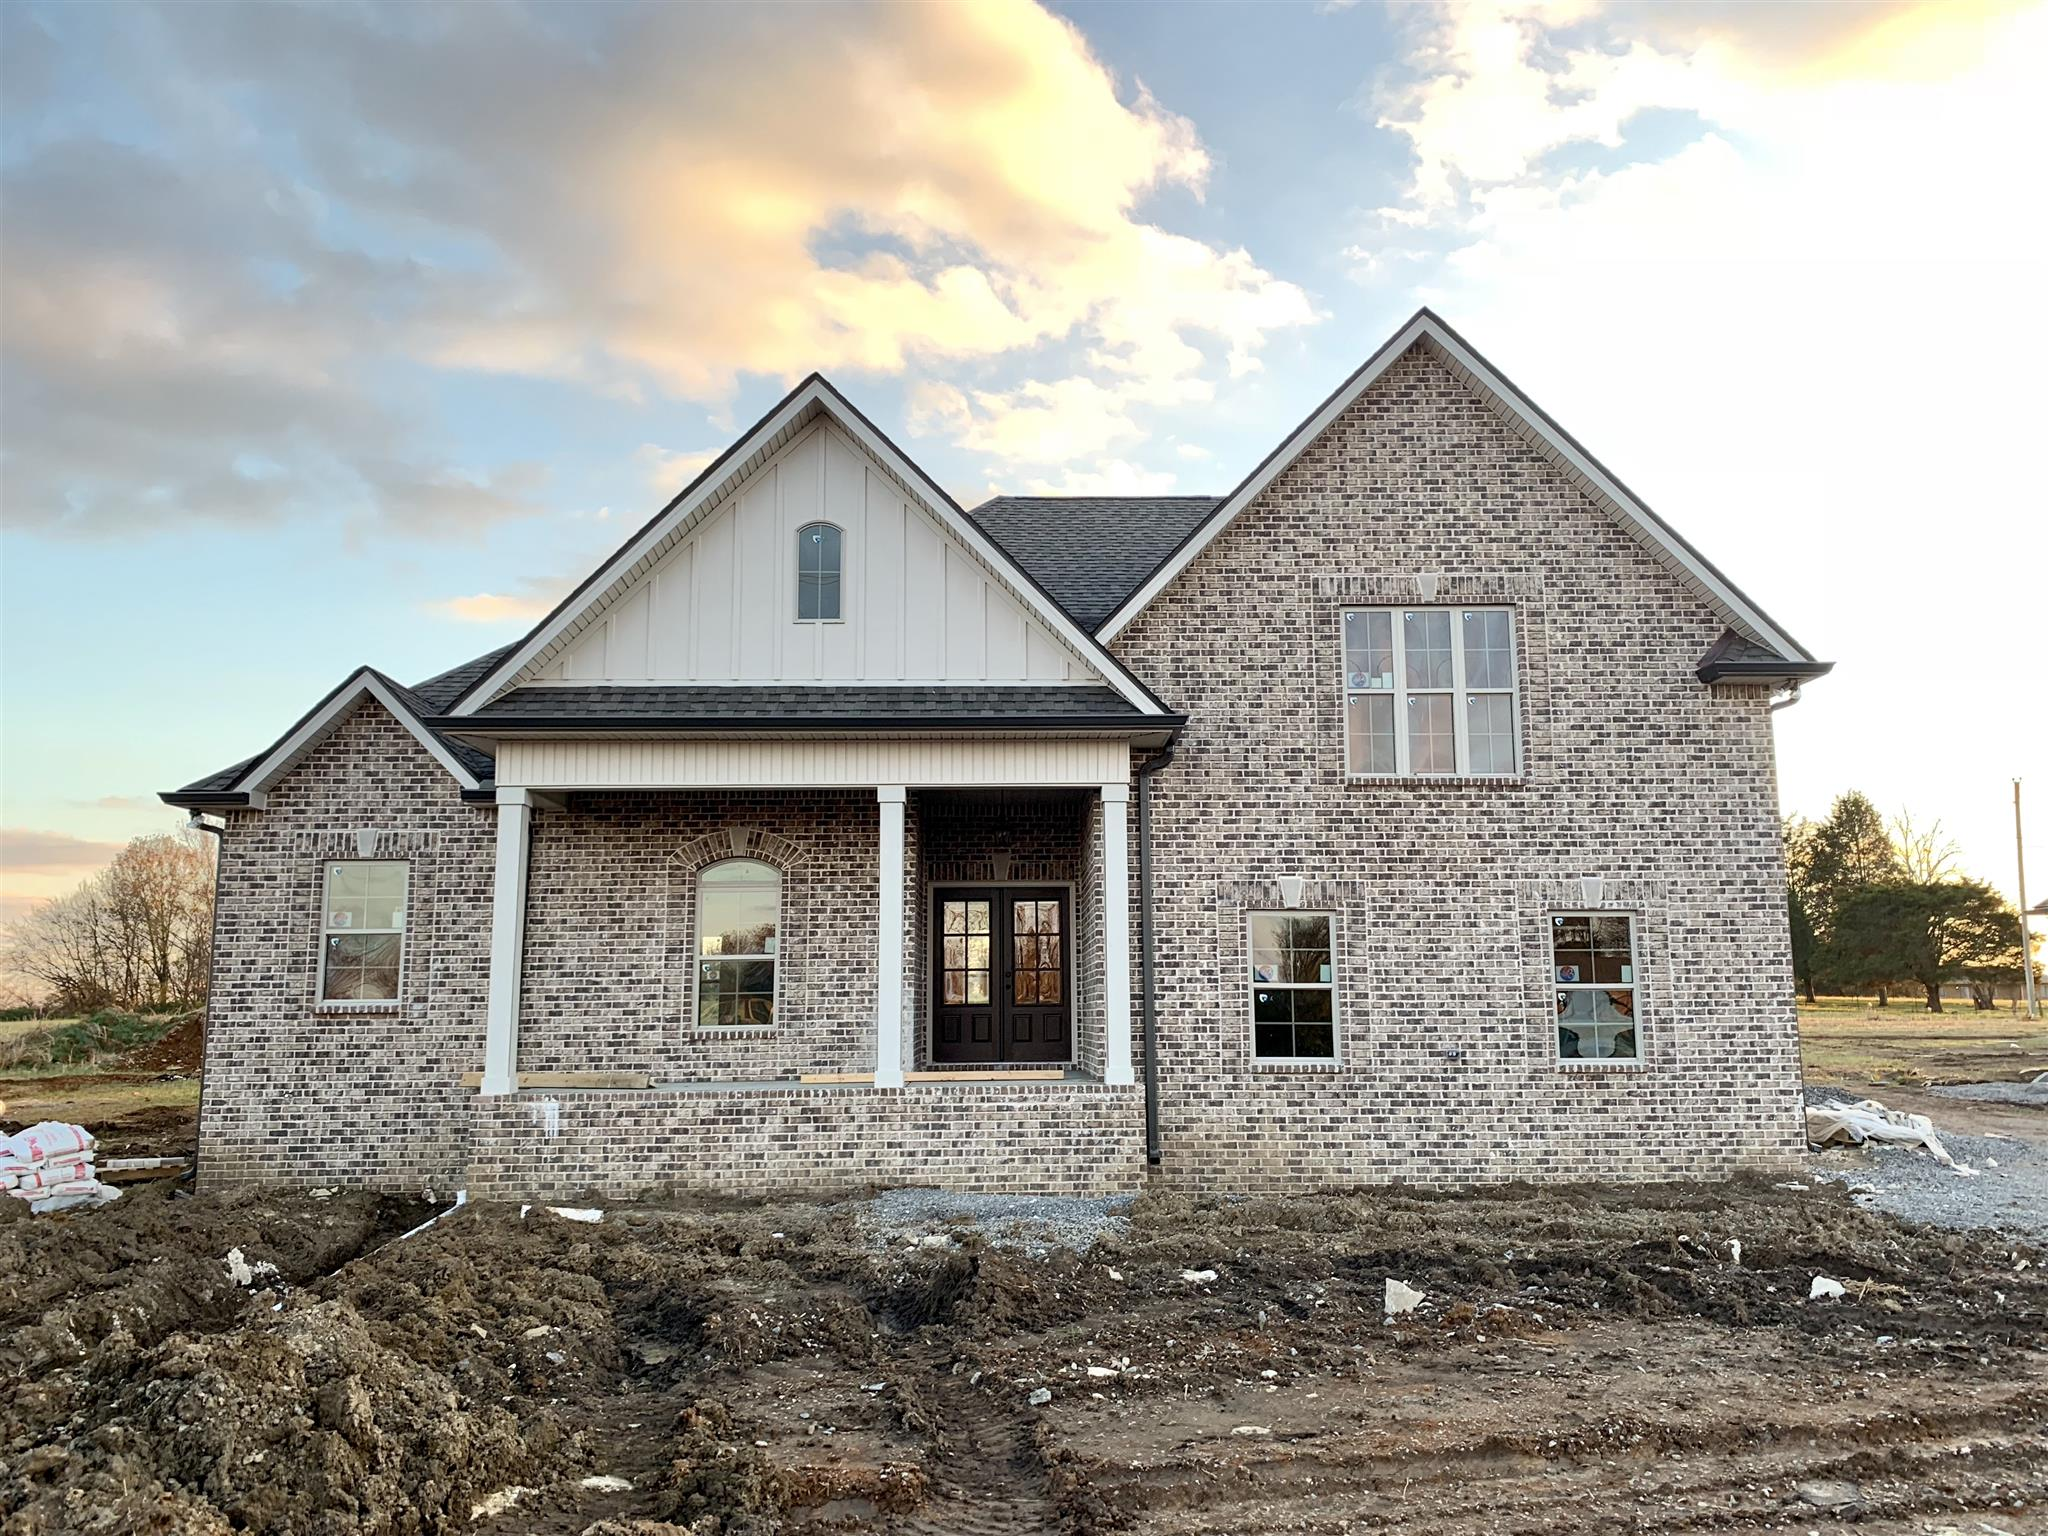 1616 Hickory Ridge Rd, Lebanon in Wilson County County, TN 37087 Home for Sale